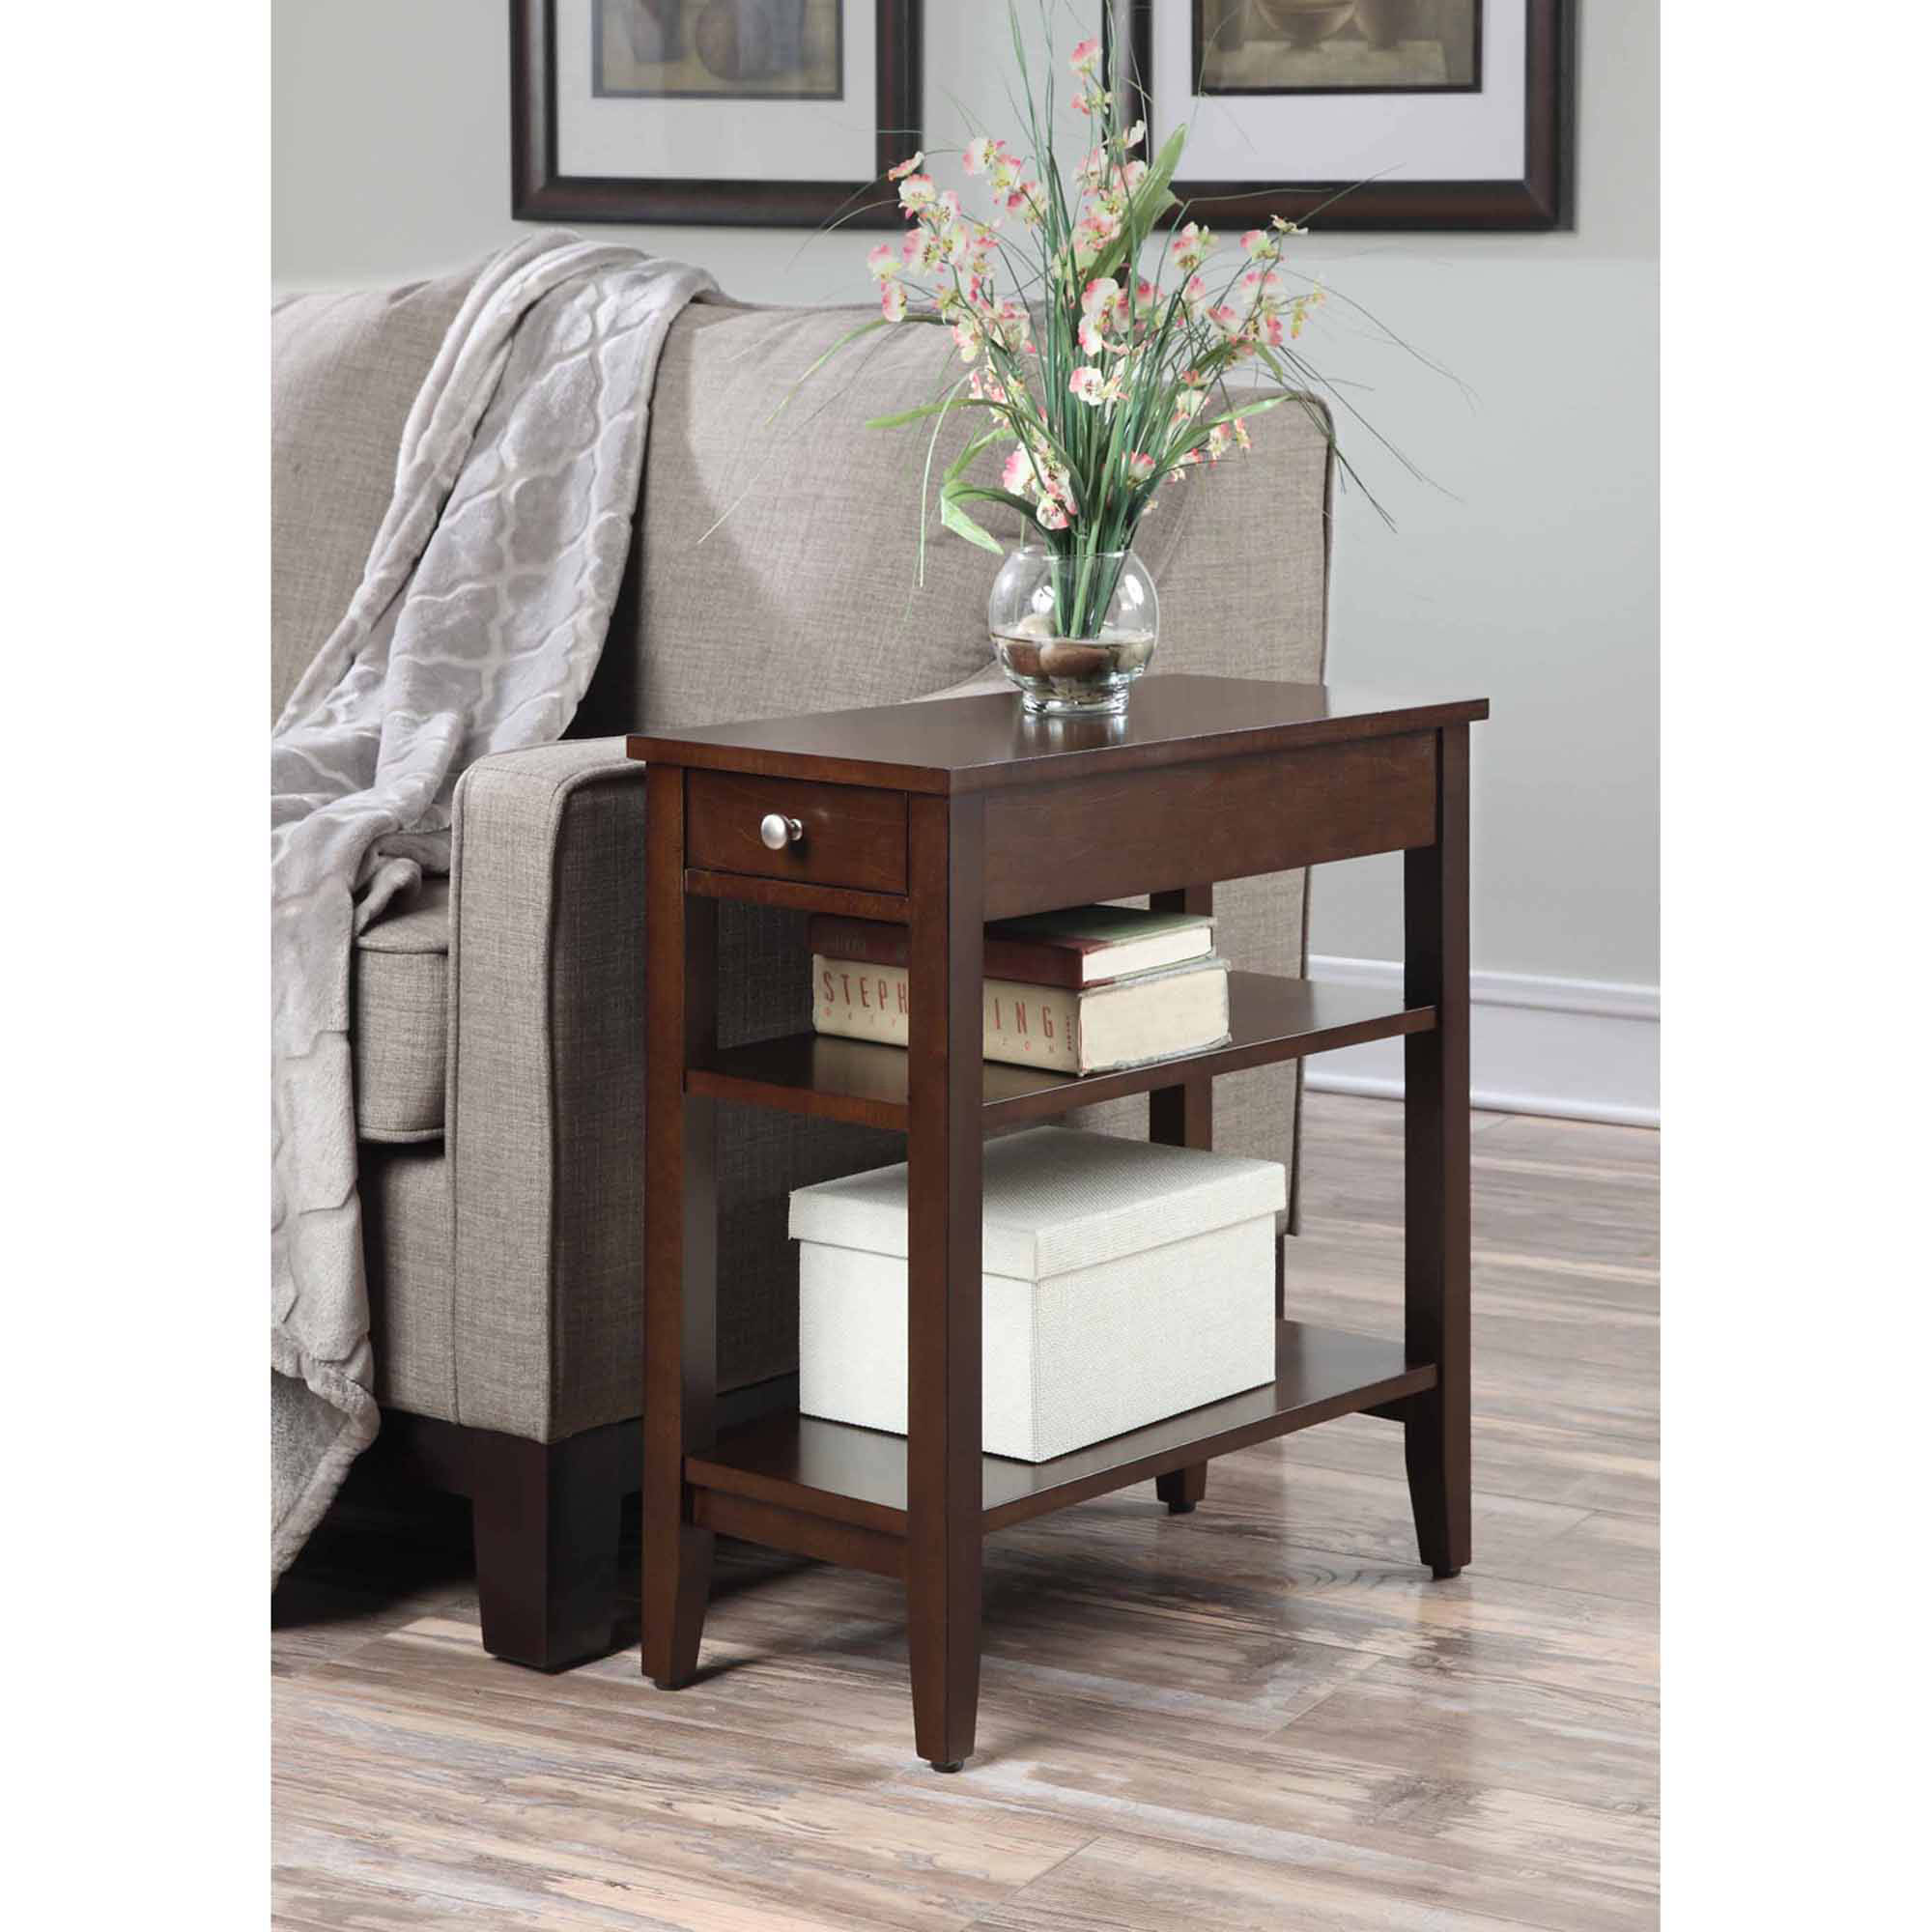 End table with drawer - Convenience Concepts American Heritage 3 Tier End Table With Drawer Multiple Colors Walmart Com